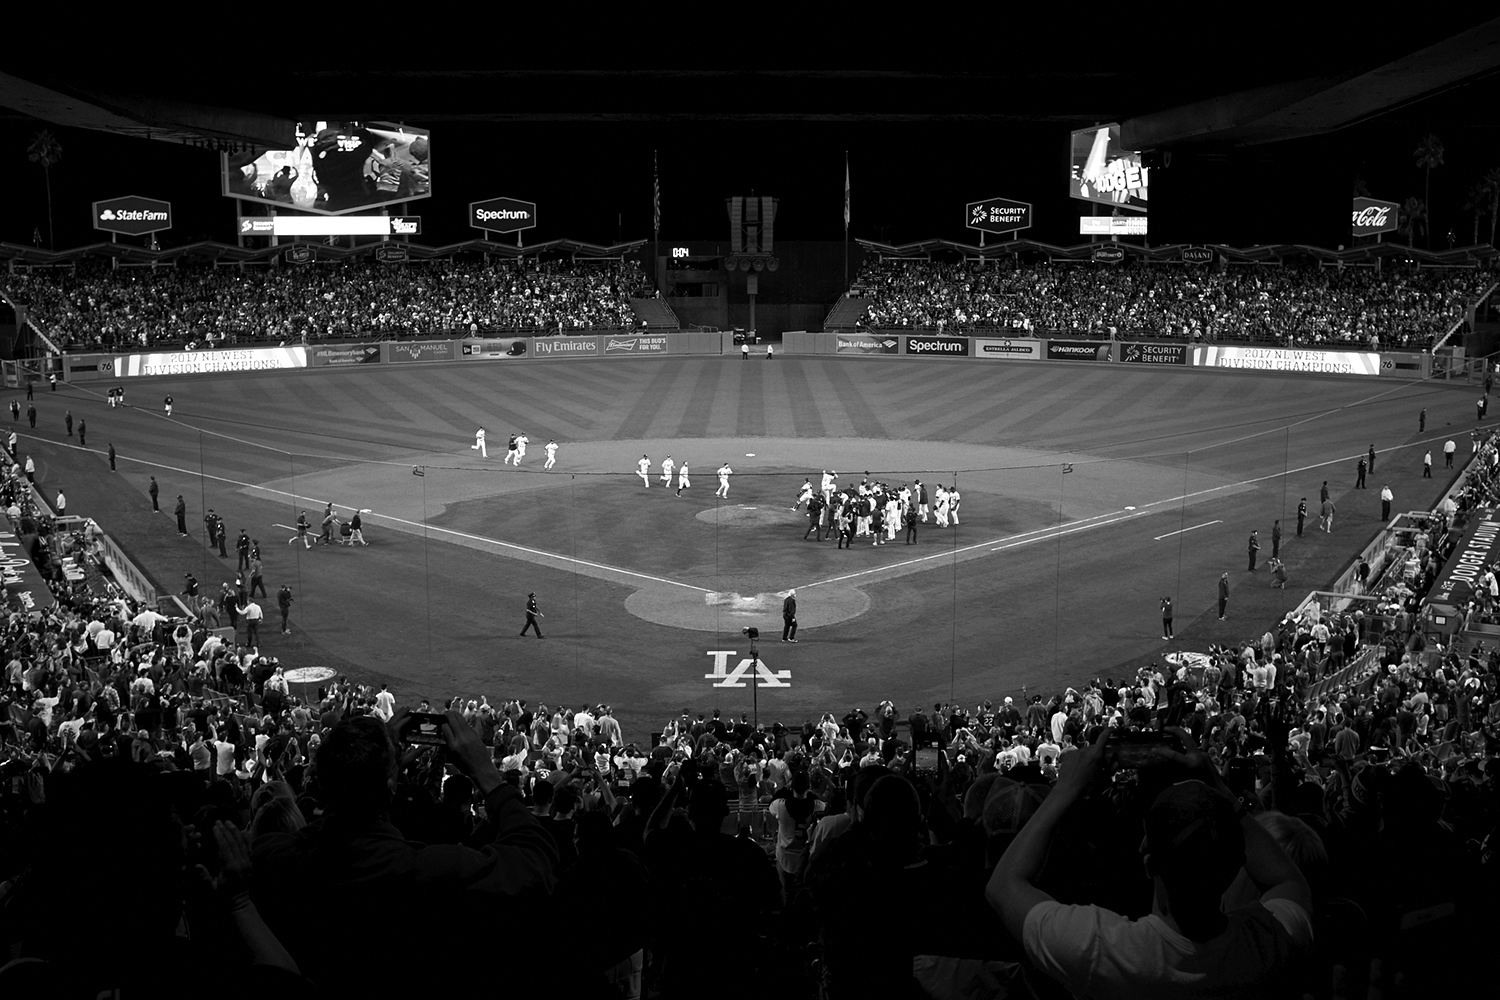 kyle_ellis_photography_dodgers_baseball_1343.jpg